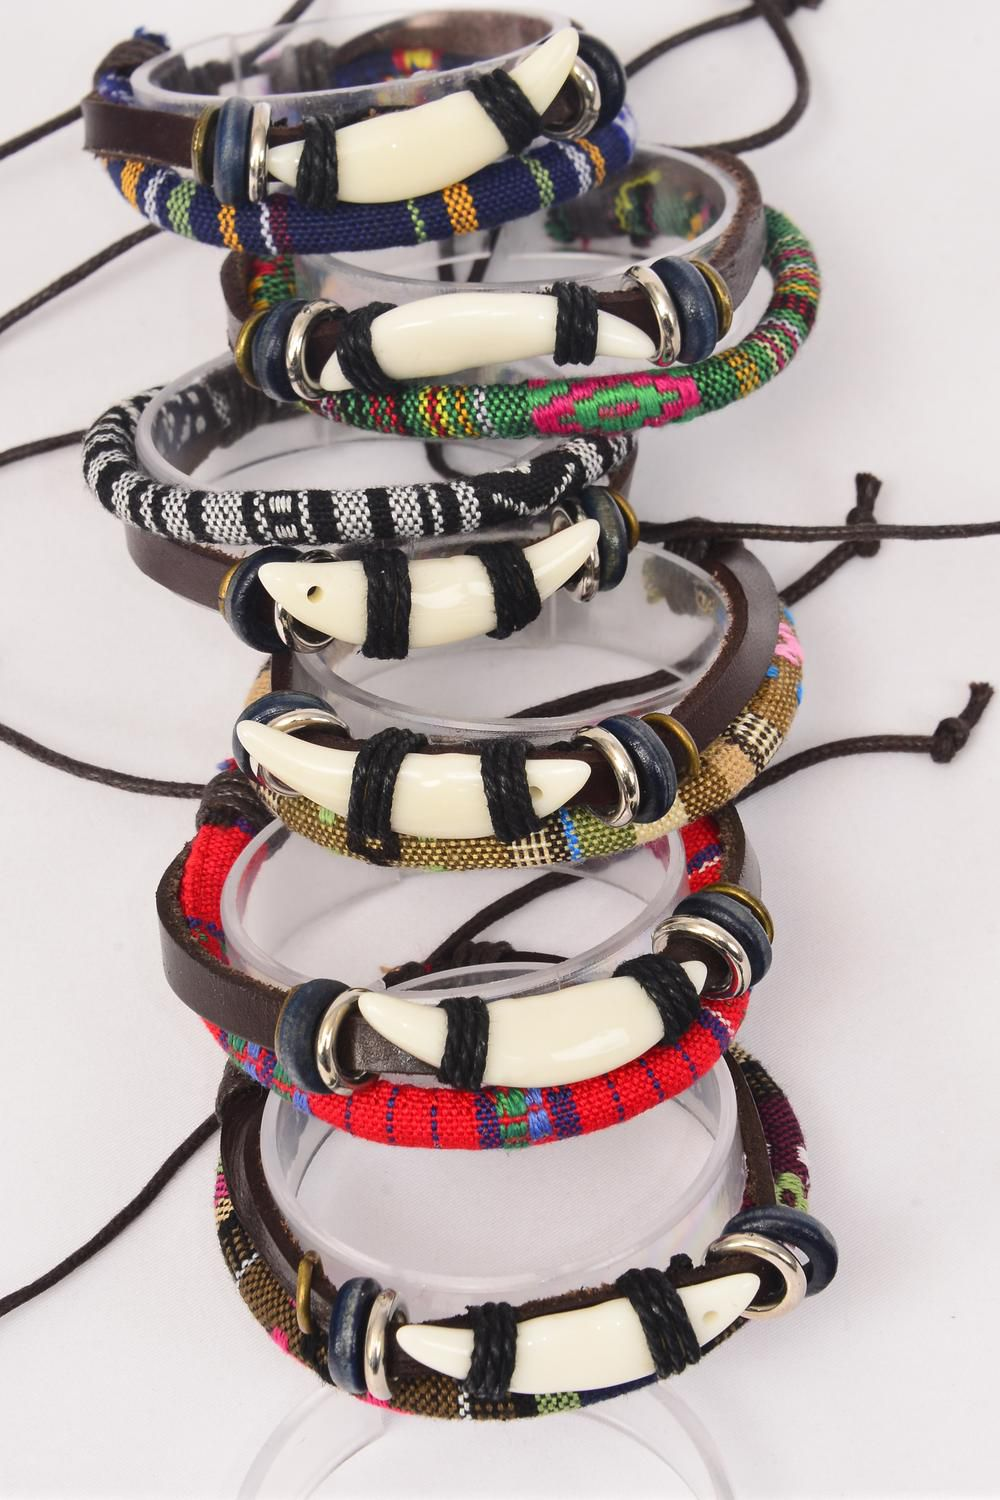 Bracelet Leather Tusk & Macrame Wrap Mix Adjustable **Unisex** Adjustable,2 of each Color Mix,Individual Hang tag & OPP Bag & UPC Code